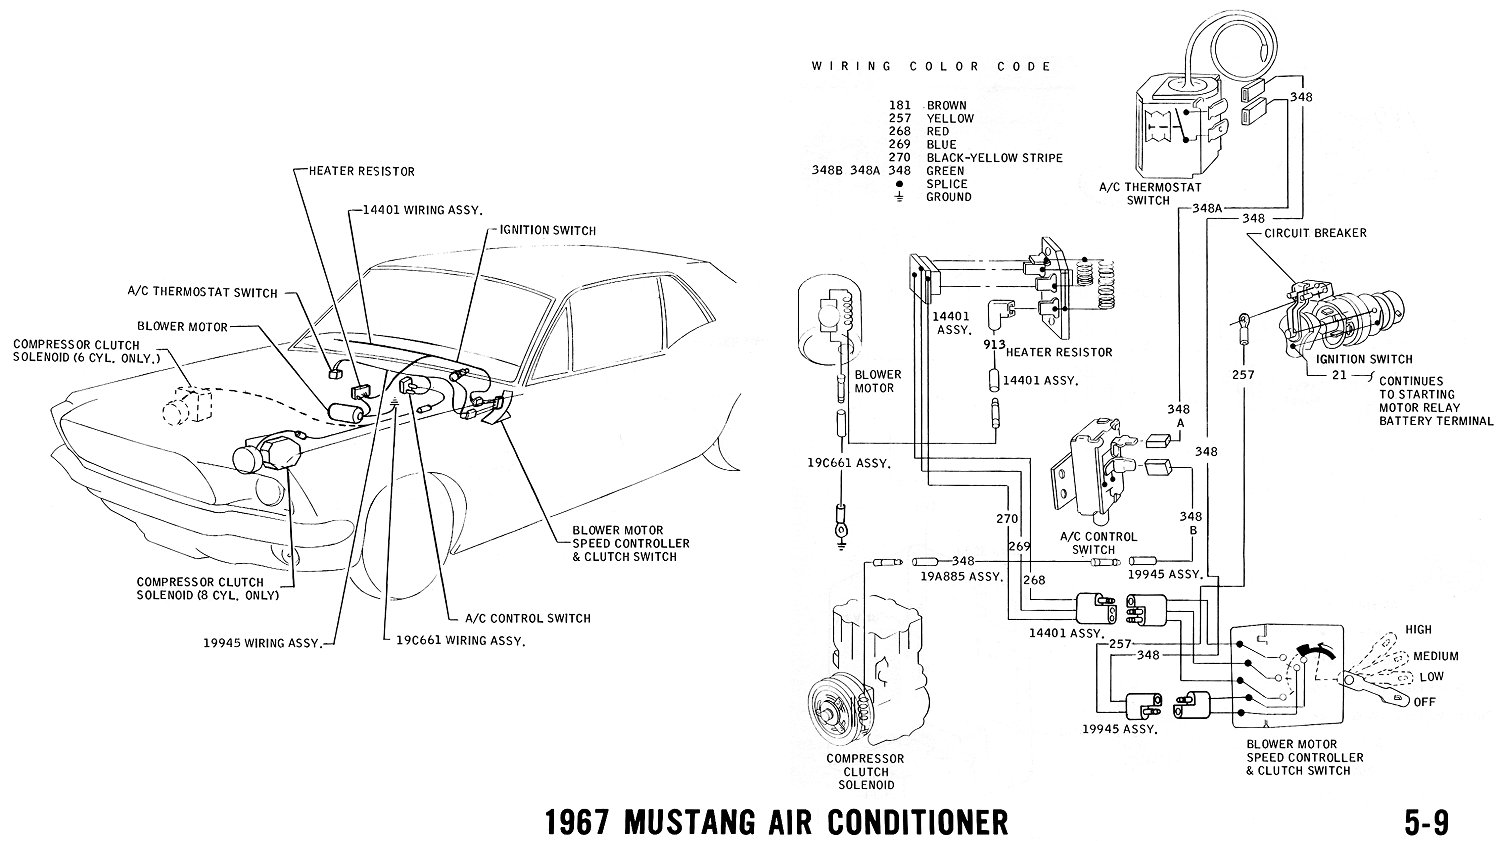 1967 mustang wiring and vacuum diagrams average joe mustang heater blower motor with cage